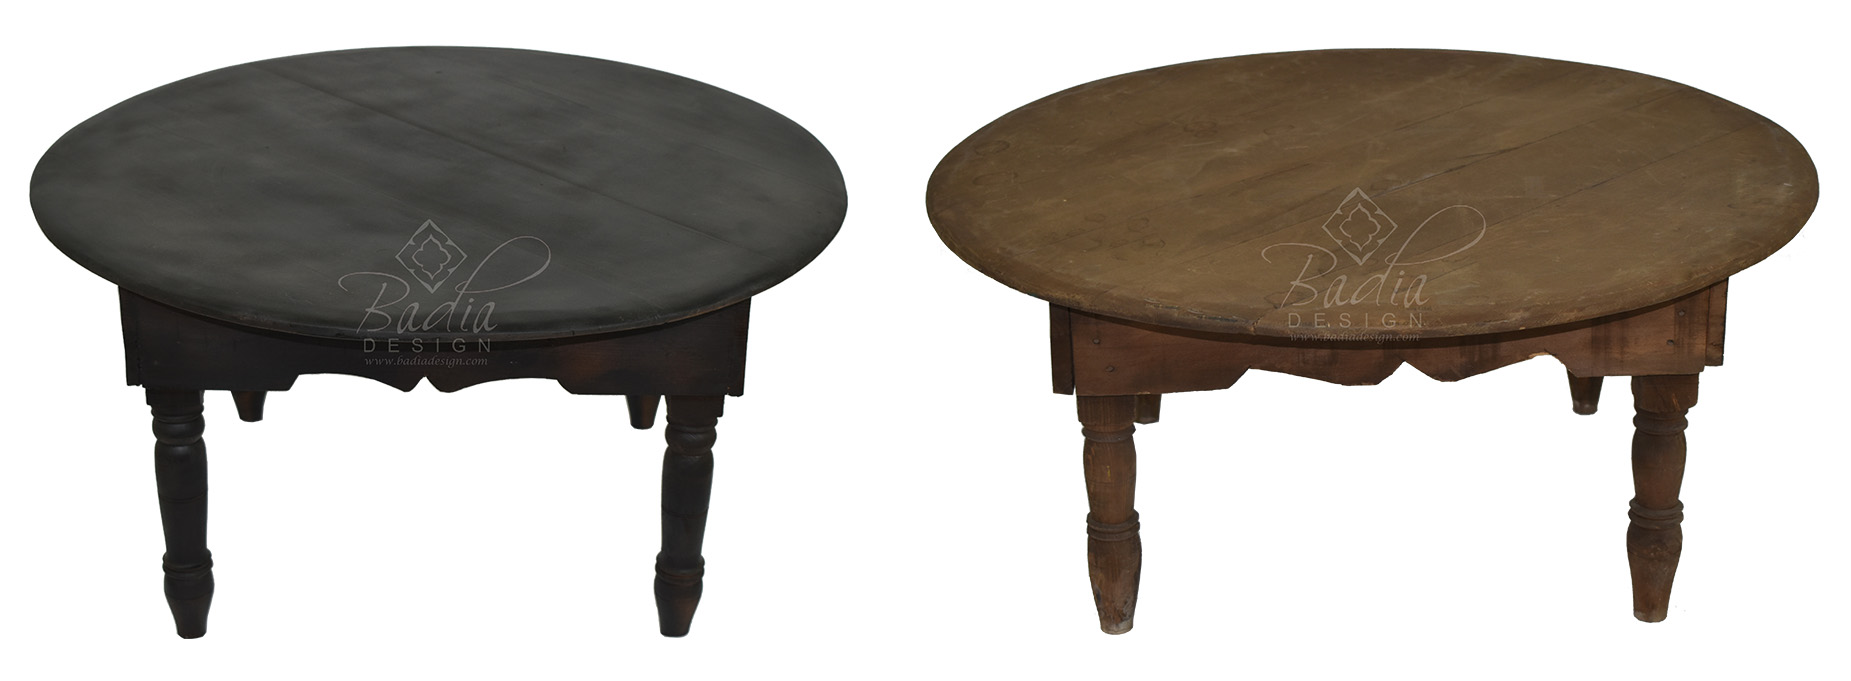 moroccan-low-cut-round-coffee-table-cw-st061.jpg